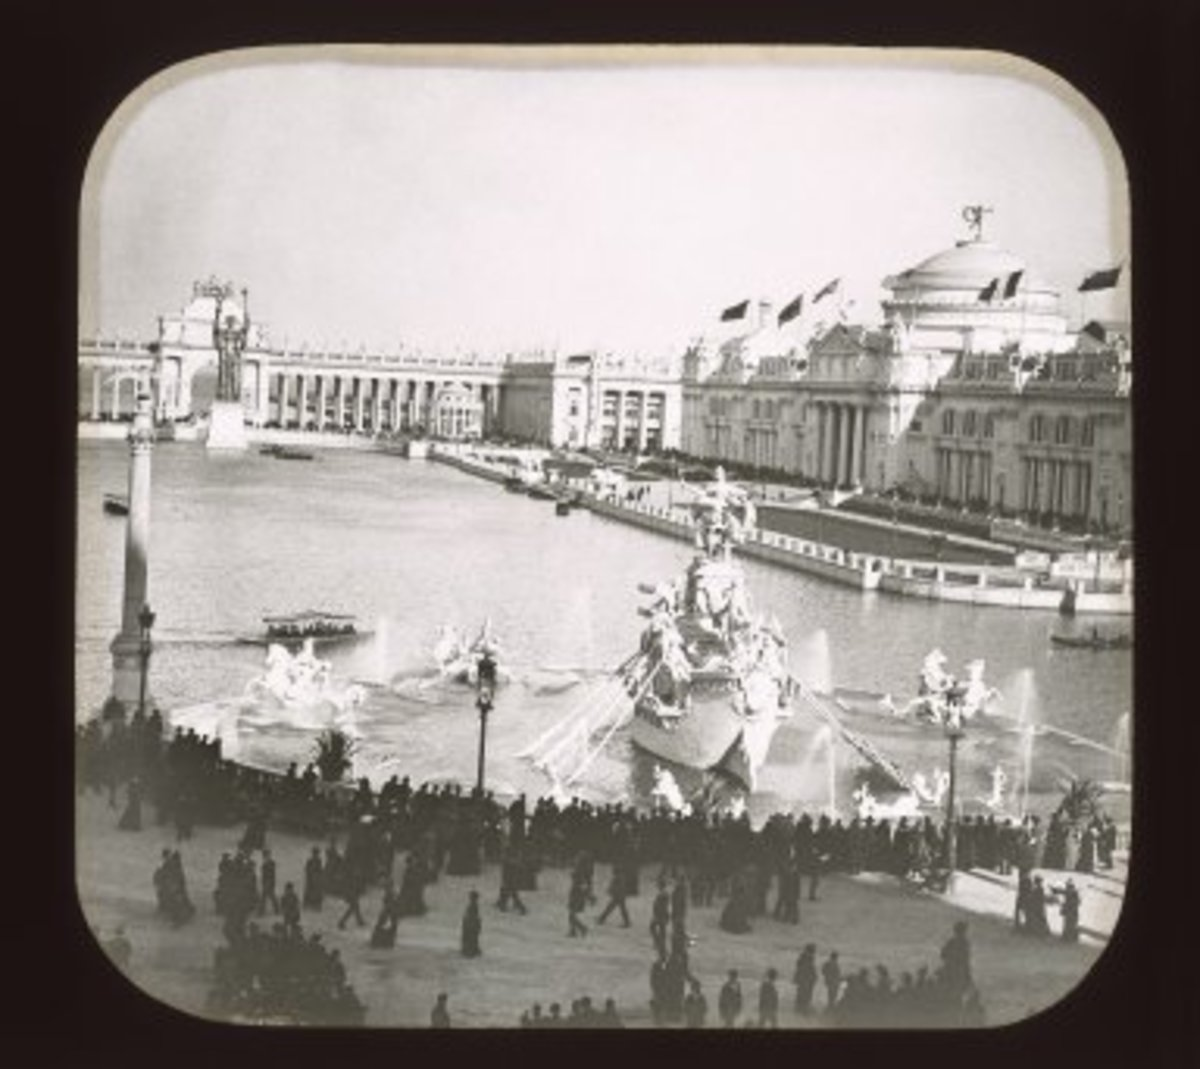 World's Columbian Exposition: Administrative Building and Court of Honor, Chicago, United States, 1893. Brooklyn Museum.